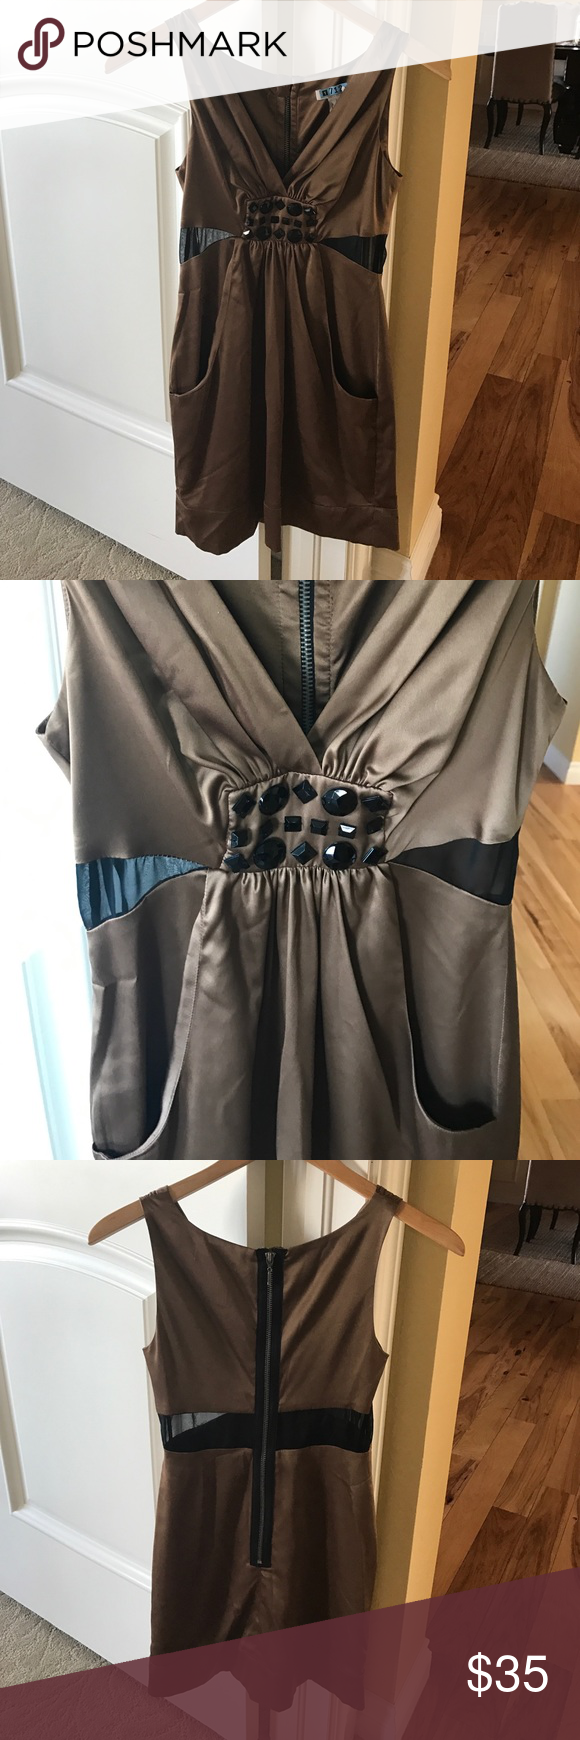 BCBG Generation Dress💇🏼 BCBG Generation Dress💇🏼. Sexy dress with black Sheer mess on sides and thru height waist in back, exposed zipper in back. Pockets. Great preowned condition BCBGeneration Dresses Mini